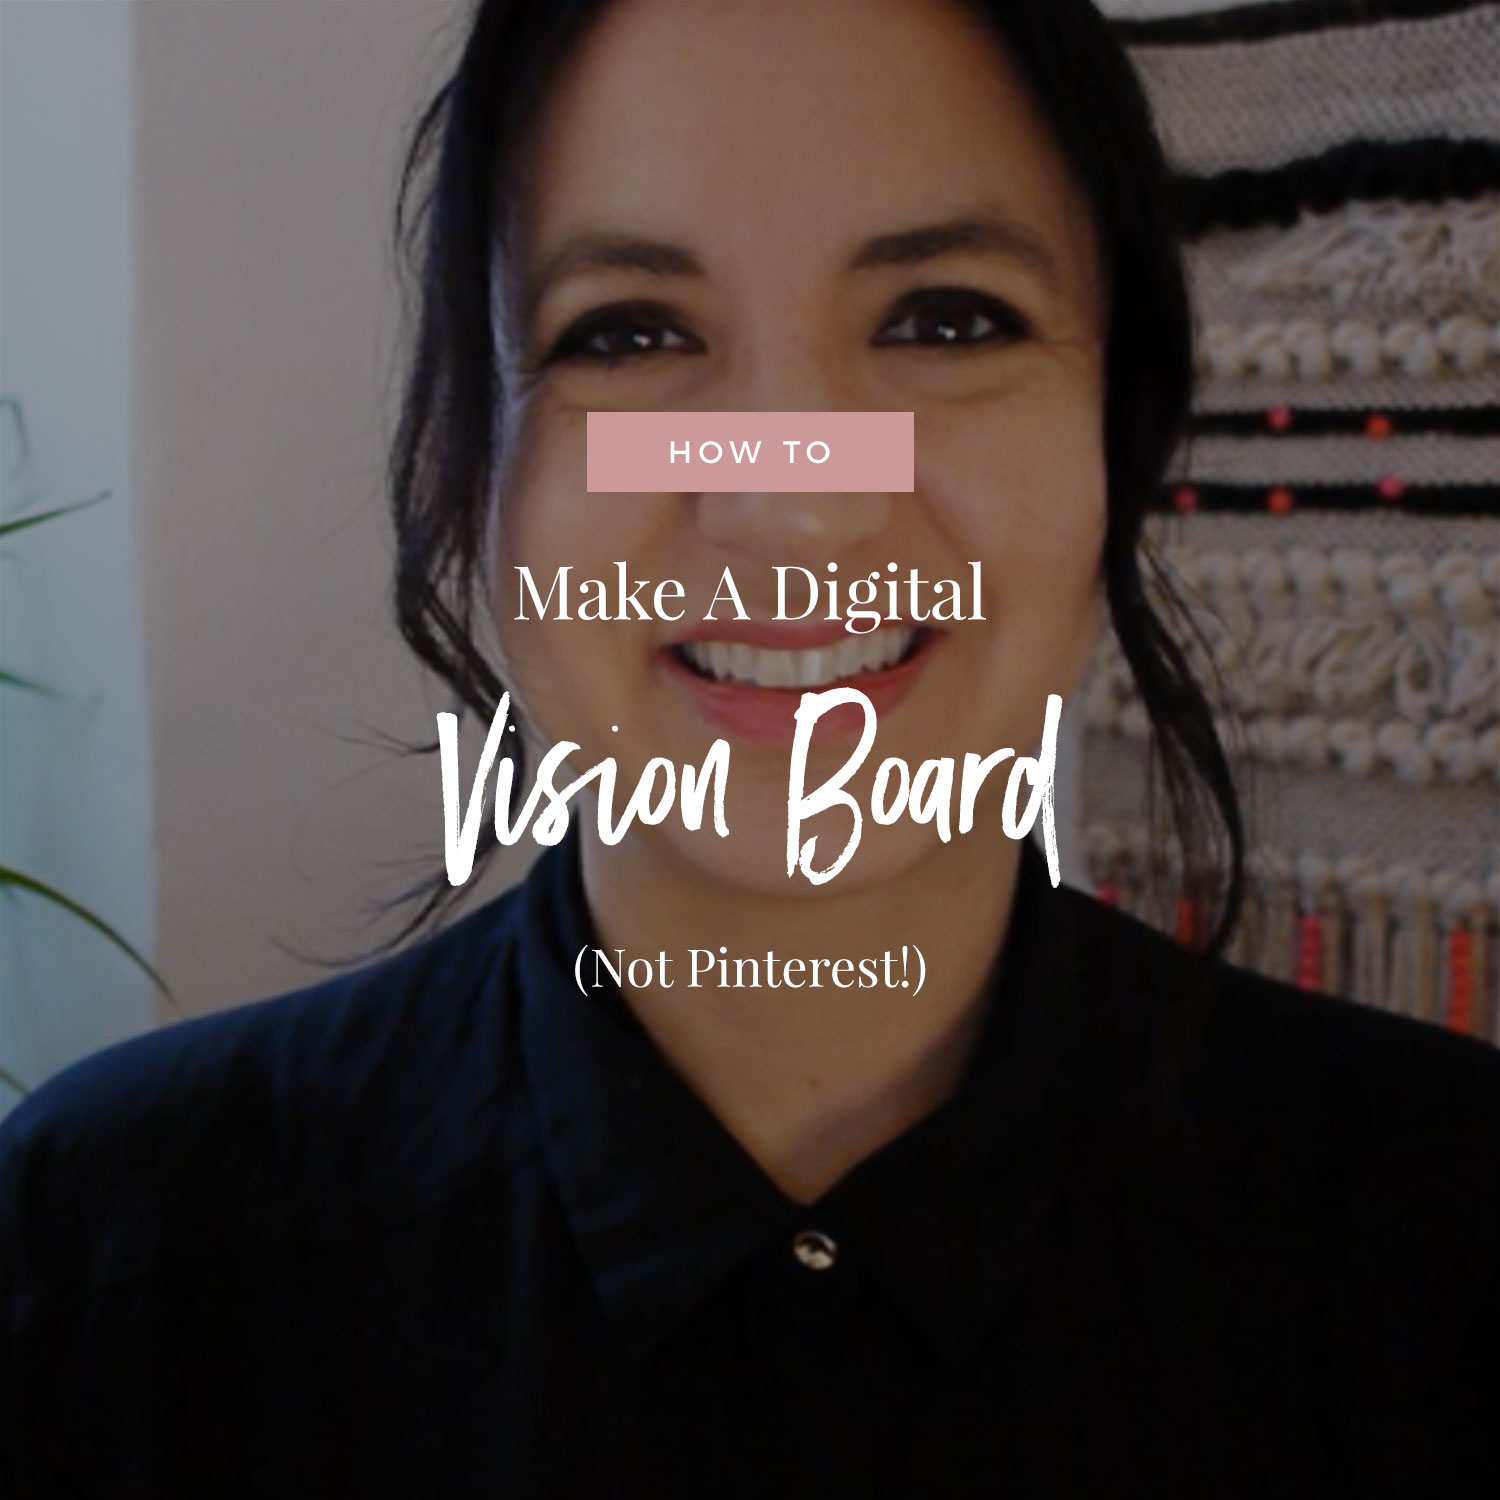 How To Make A Digital Vision Board (Not Pinterest!)